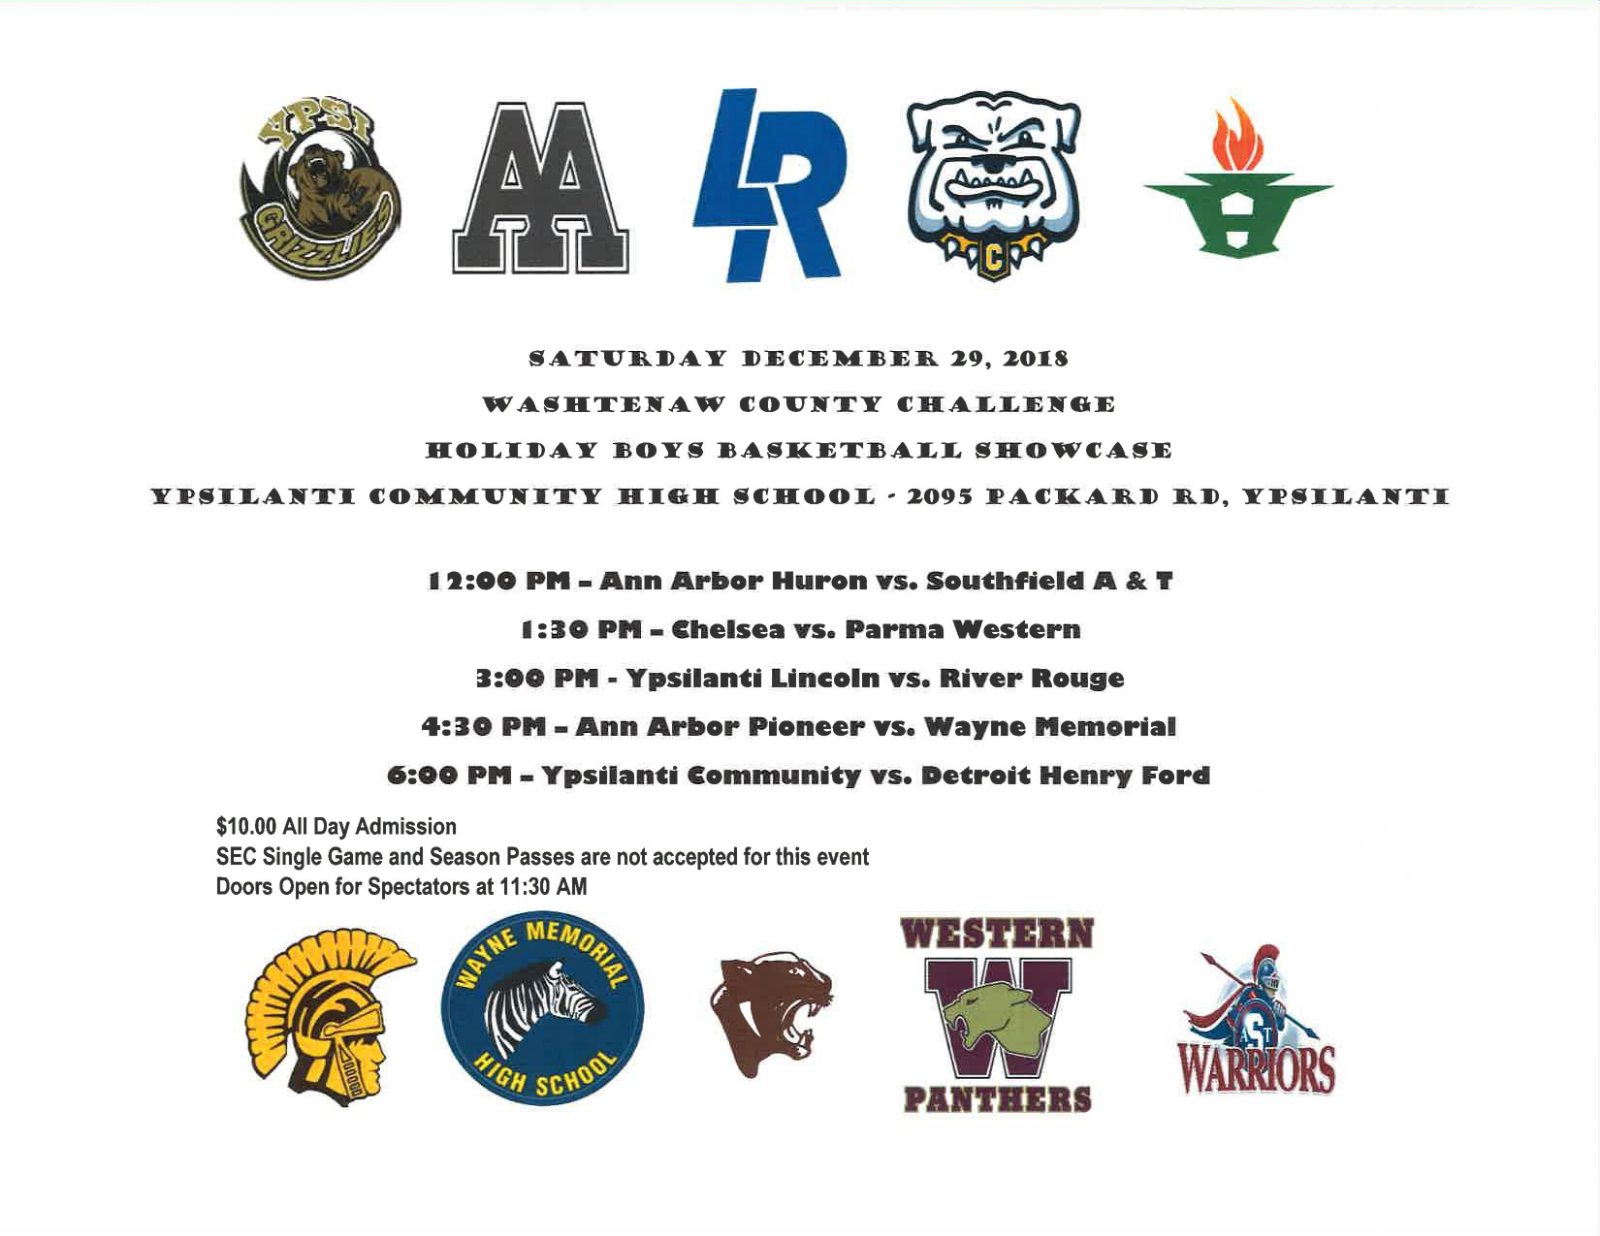 Washtenaw County Challenge Holiday Showcase – Basketball